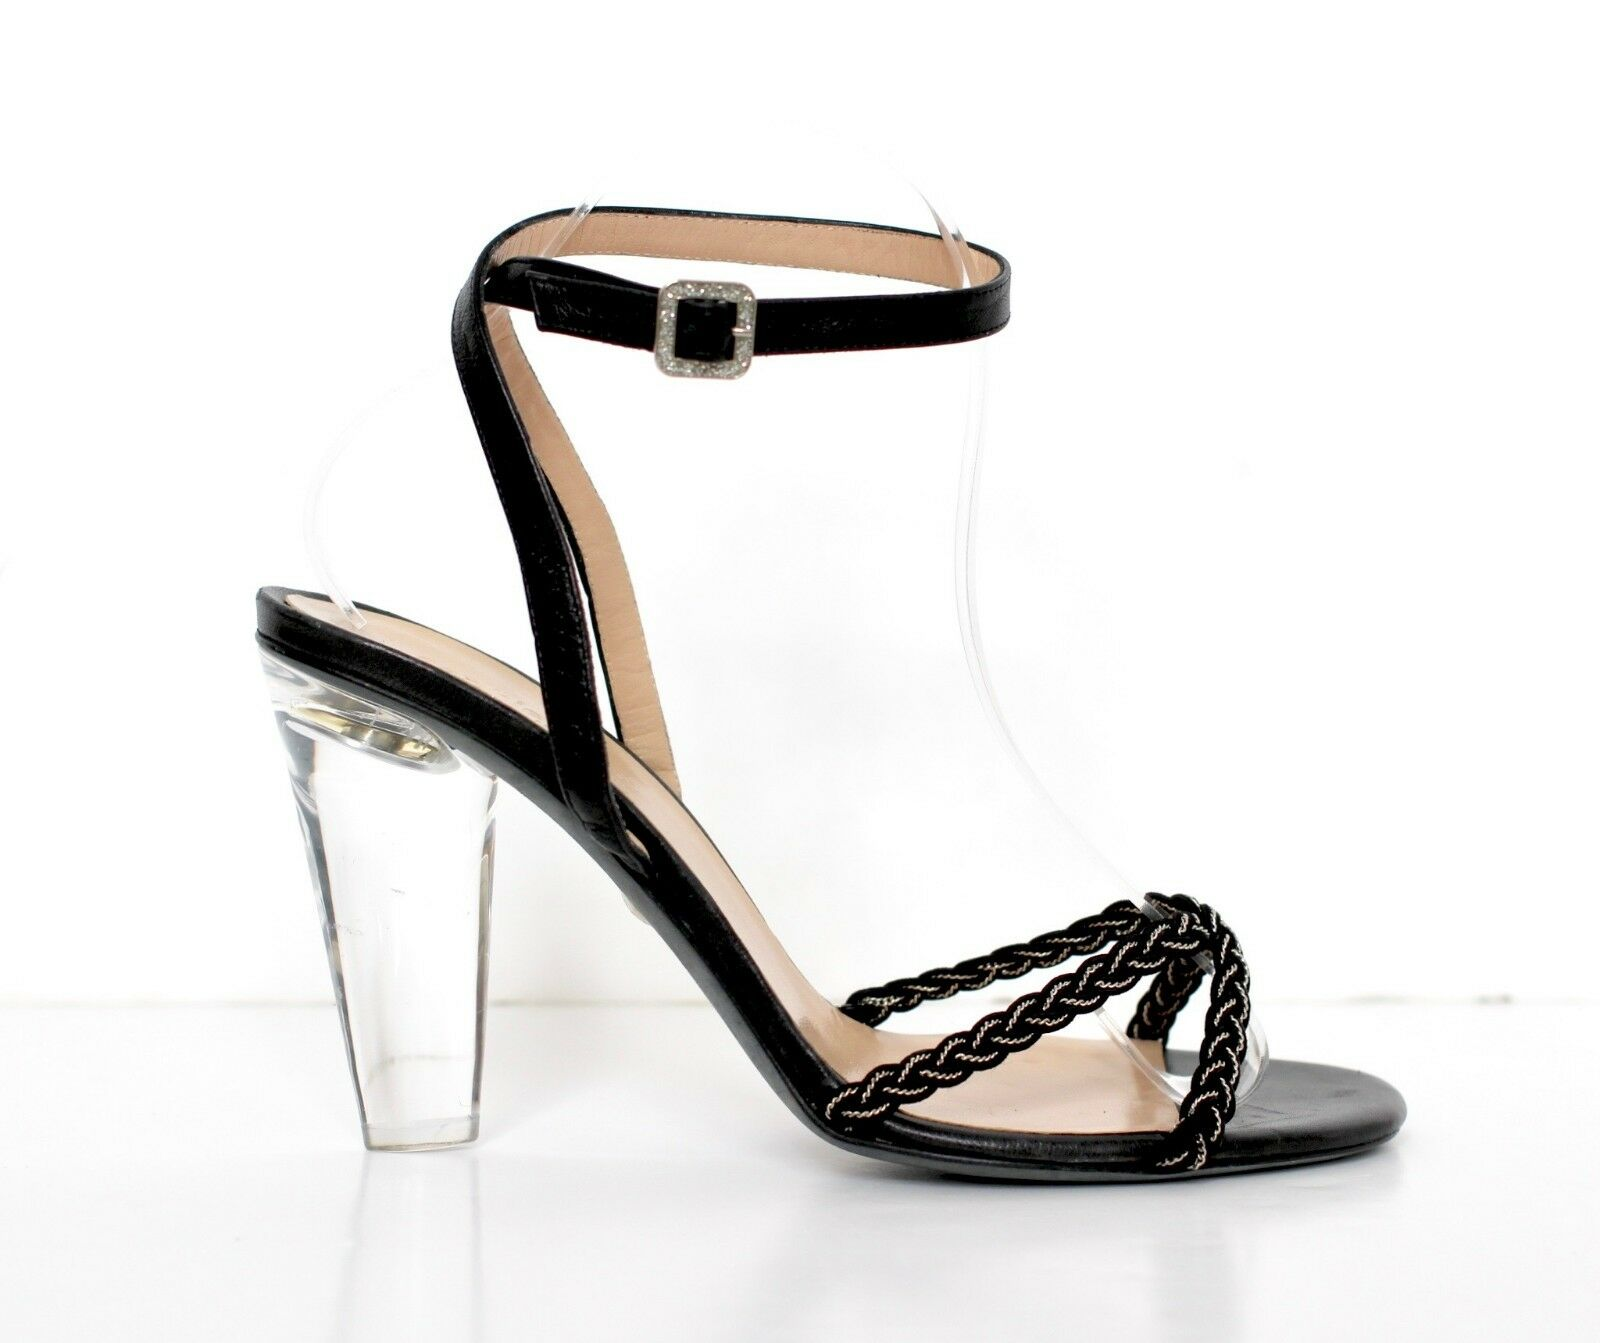 SOPHIE COX Singapore Sling black high heel strappy sandals IT39 UK6 US9